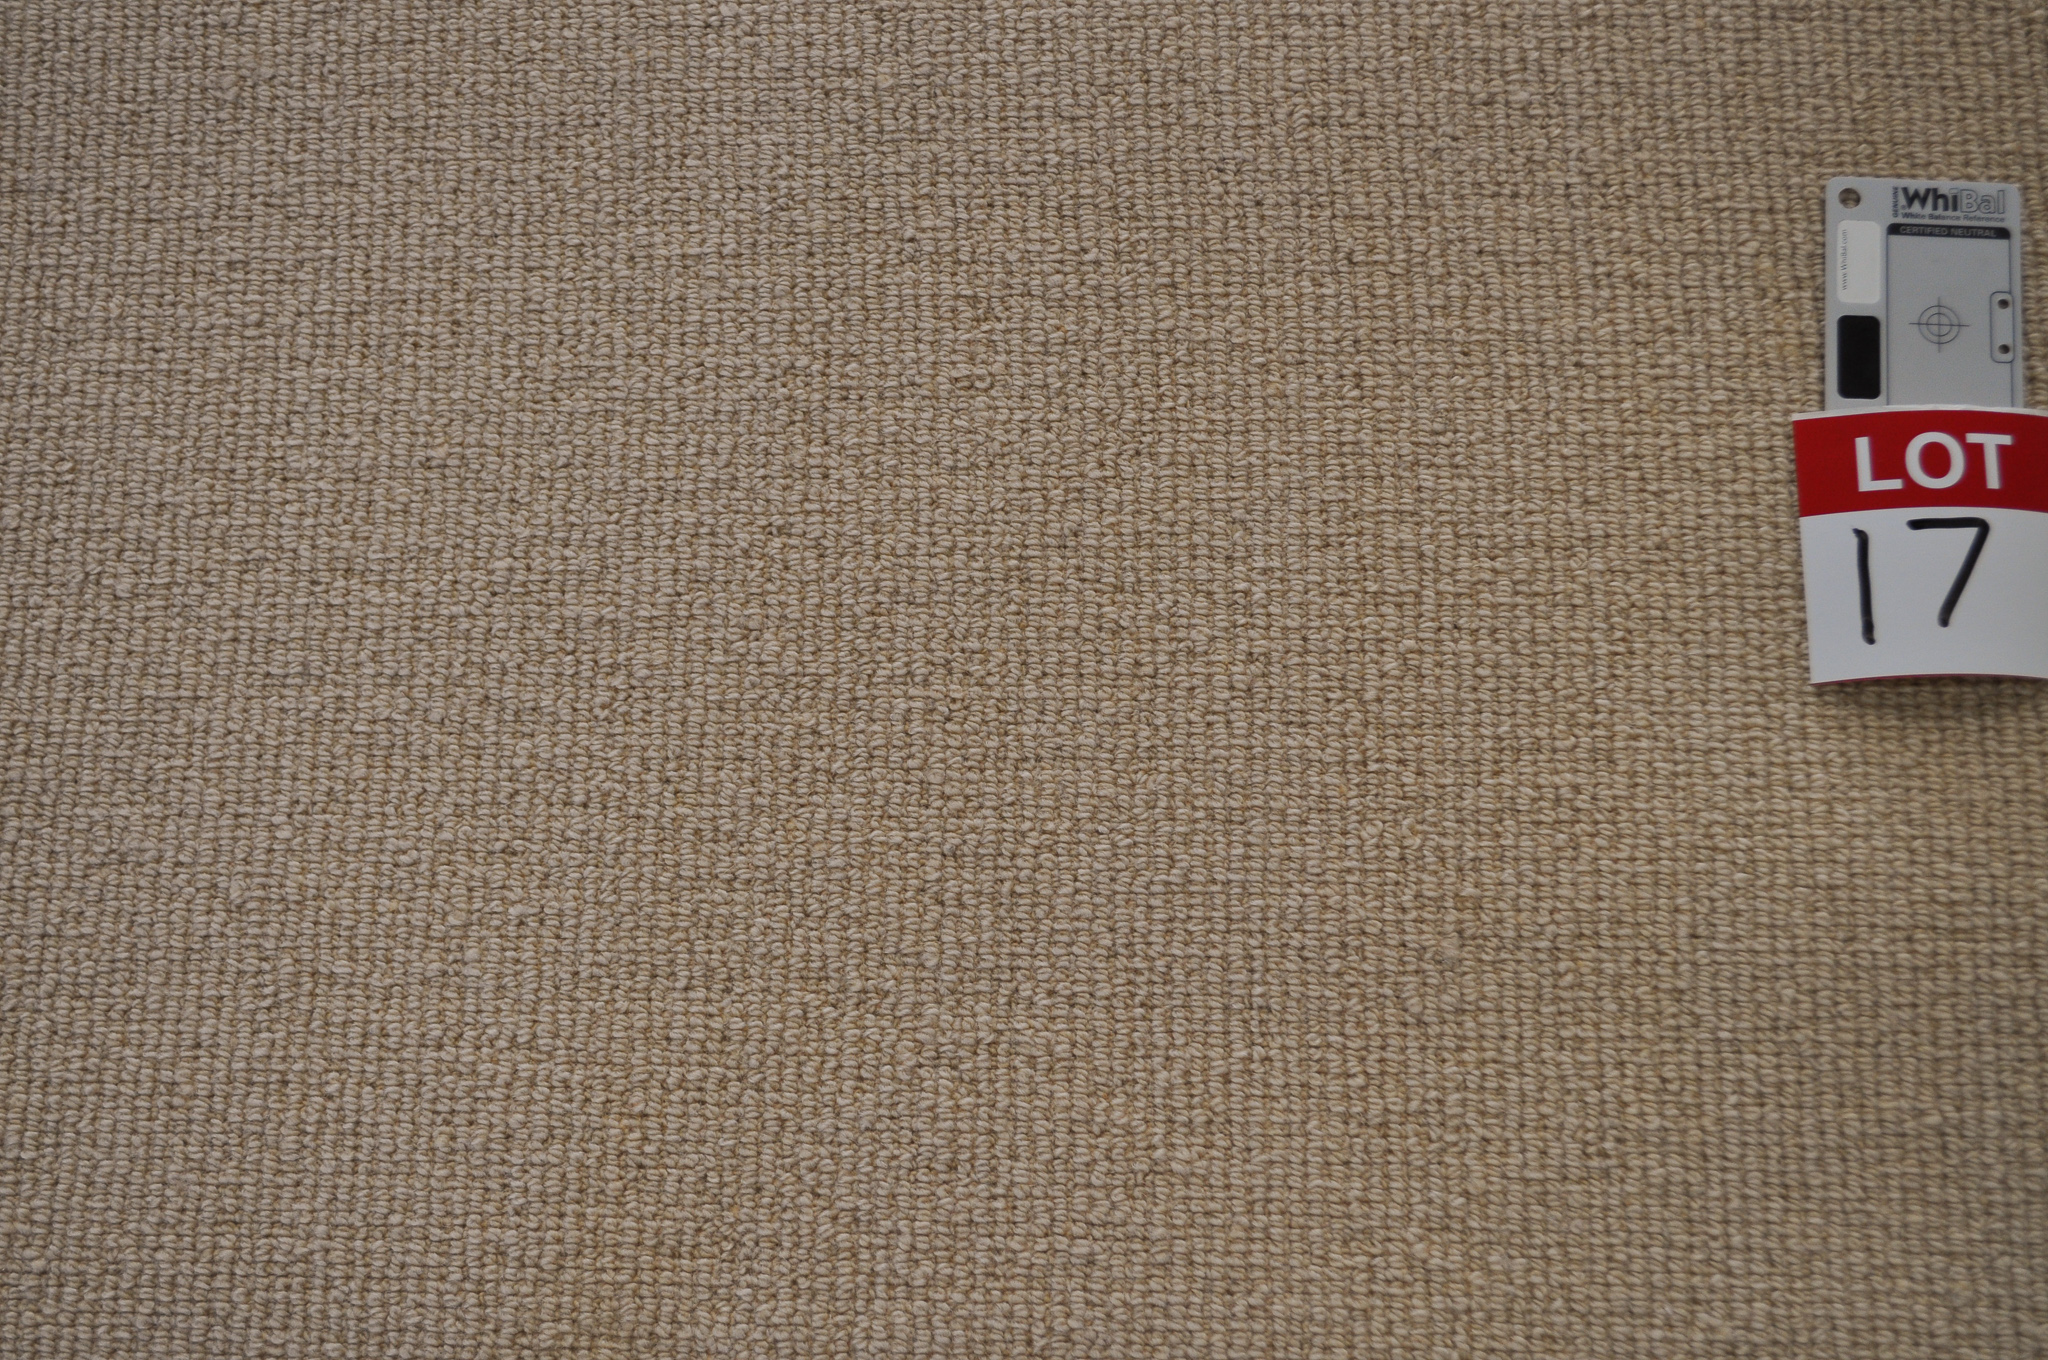 yellow beige colored, sisal pile, roll of carpet on sale at Concord Floors, it being a remnant roll in Concord Floor's warehouse.